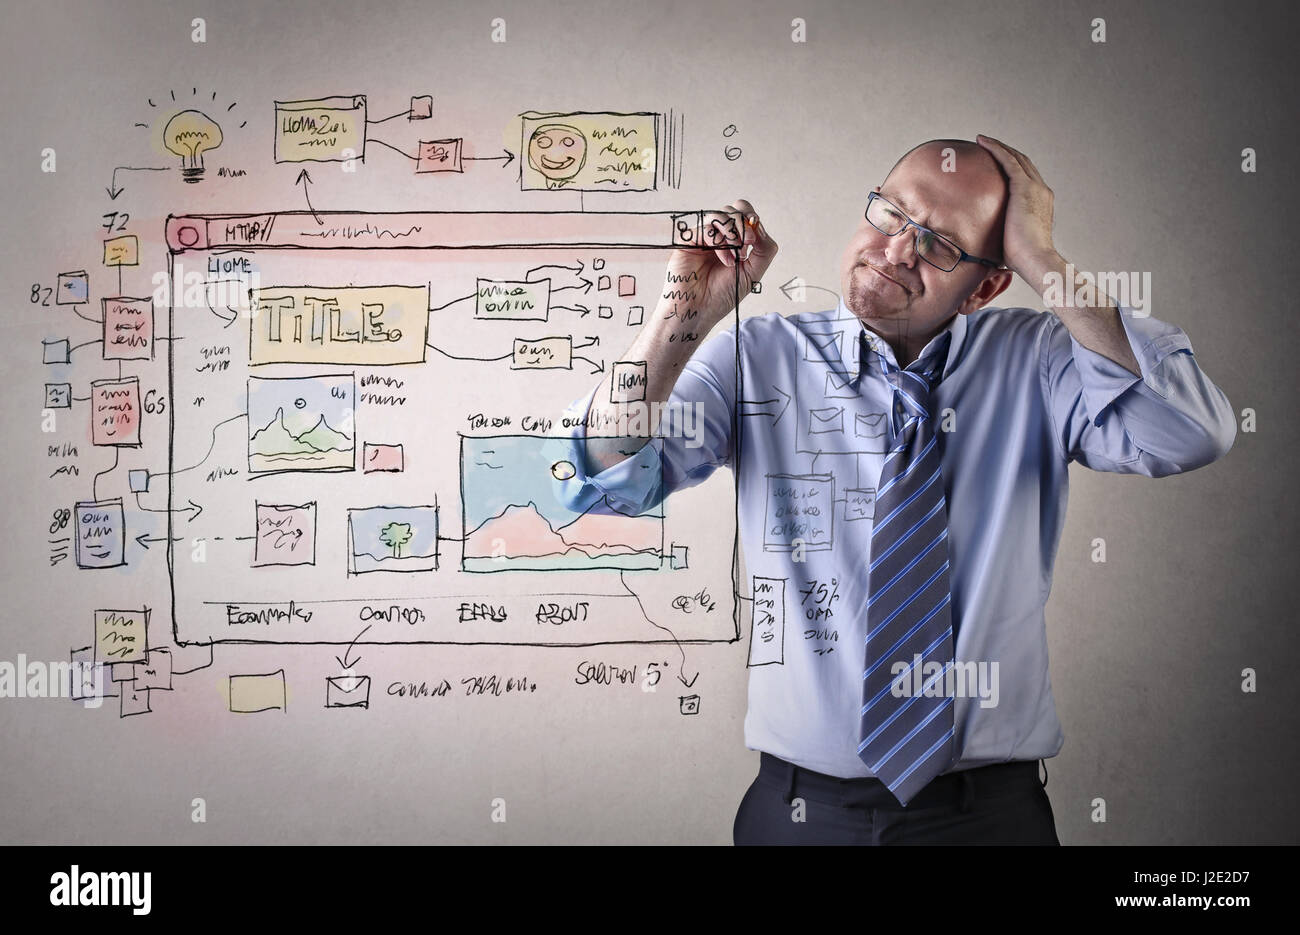 Businessman thing and planning by drawing and writing - Stock Image